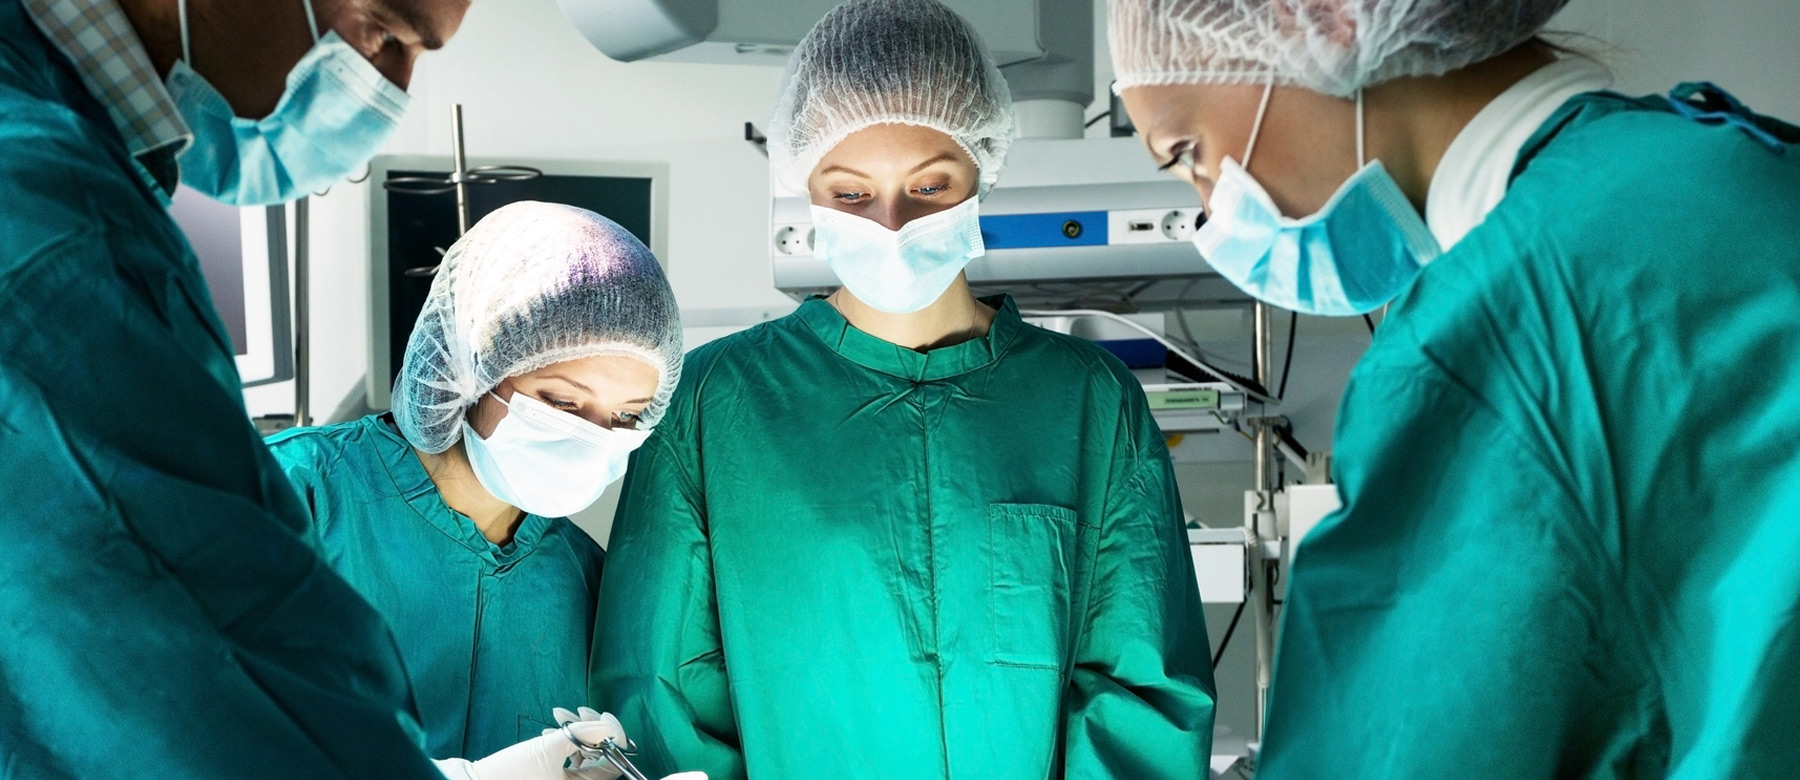 surgeons in operating theatre